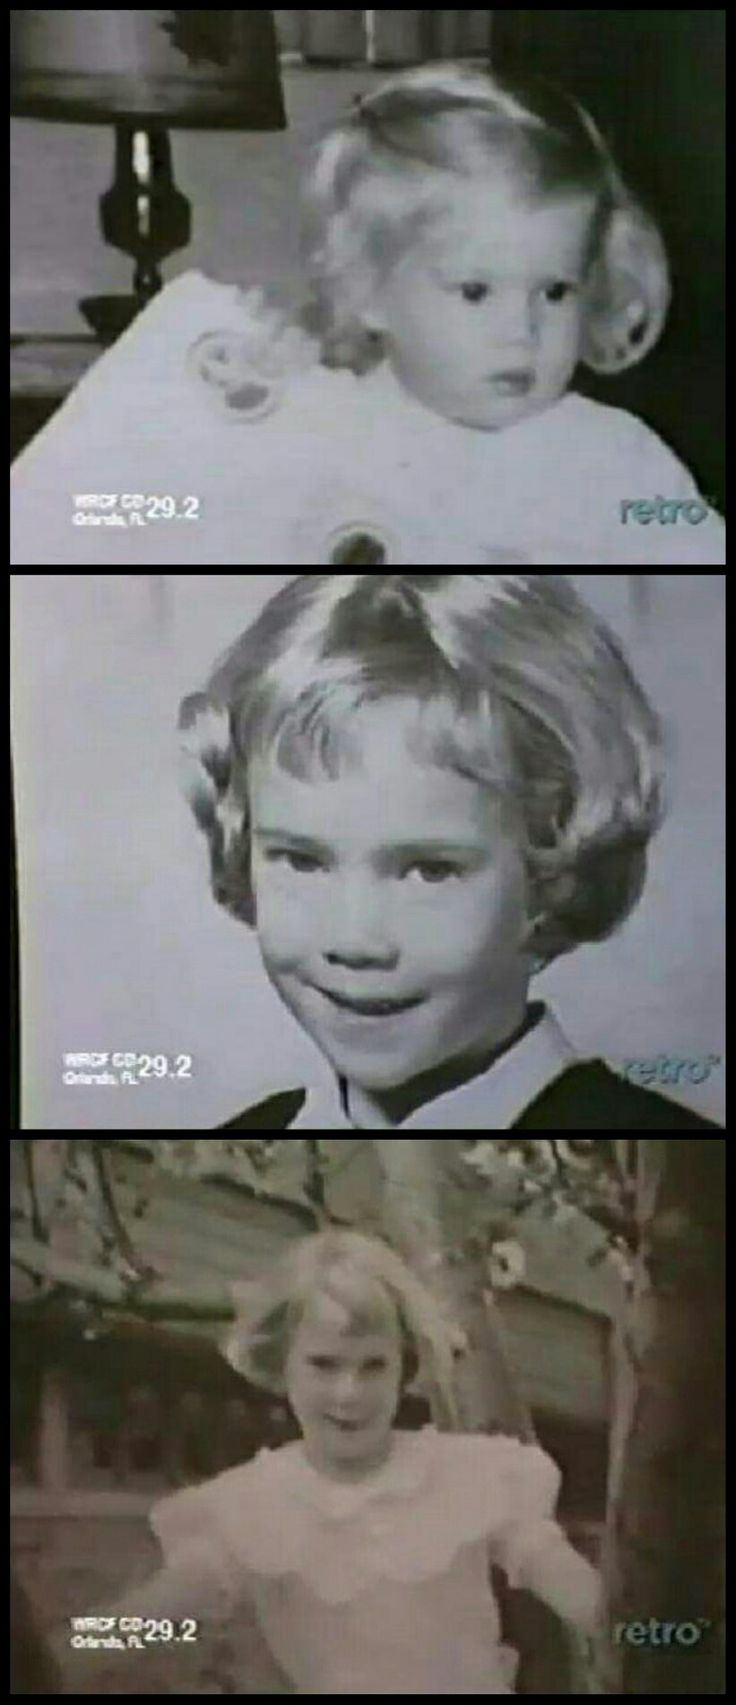 The show used several pictures of Julia Duffy as a little girl in a 1974 episode.